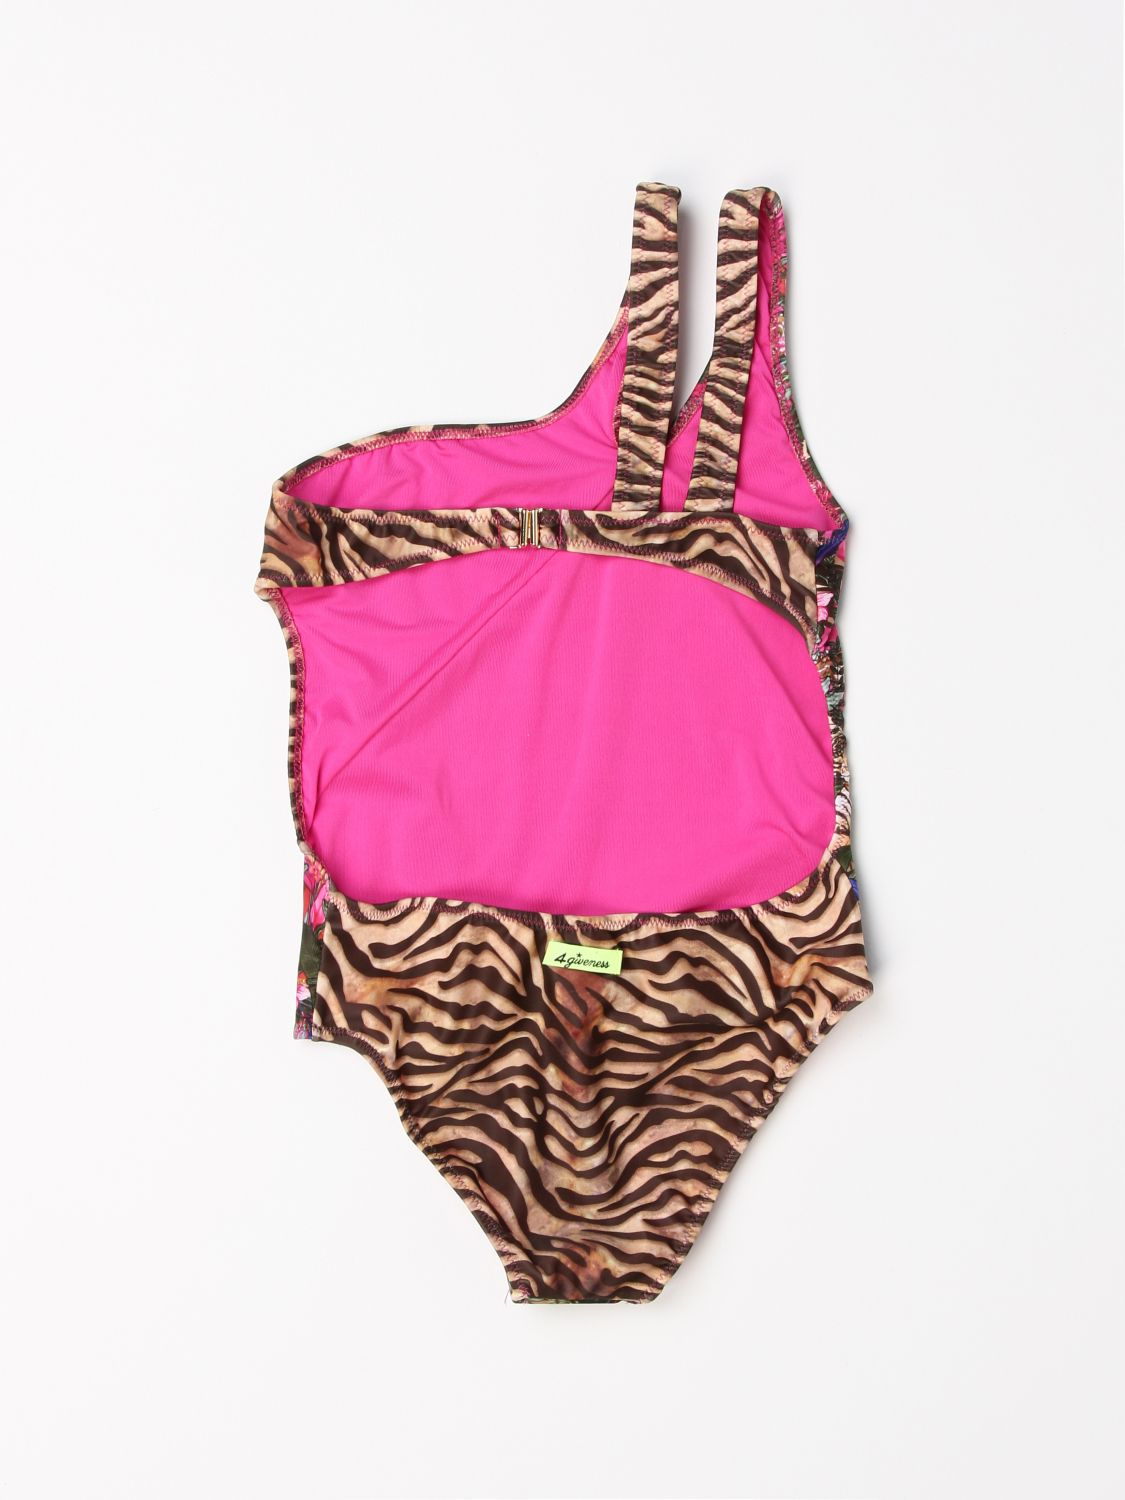 Swimsuit 4Giveness: 4Giveness patterned one-shoulder swimsuit multicolor 2